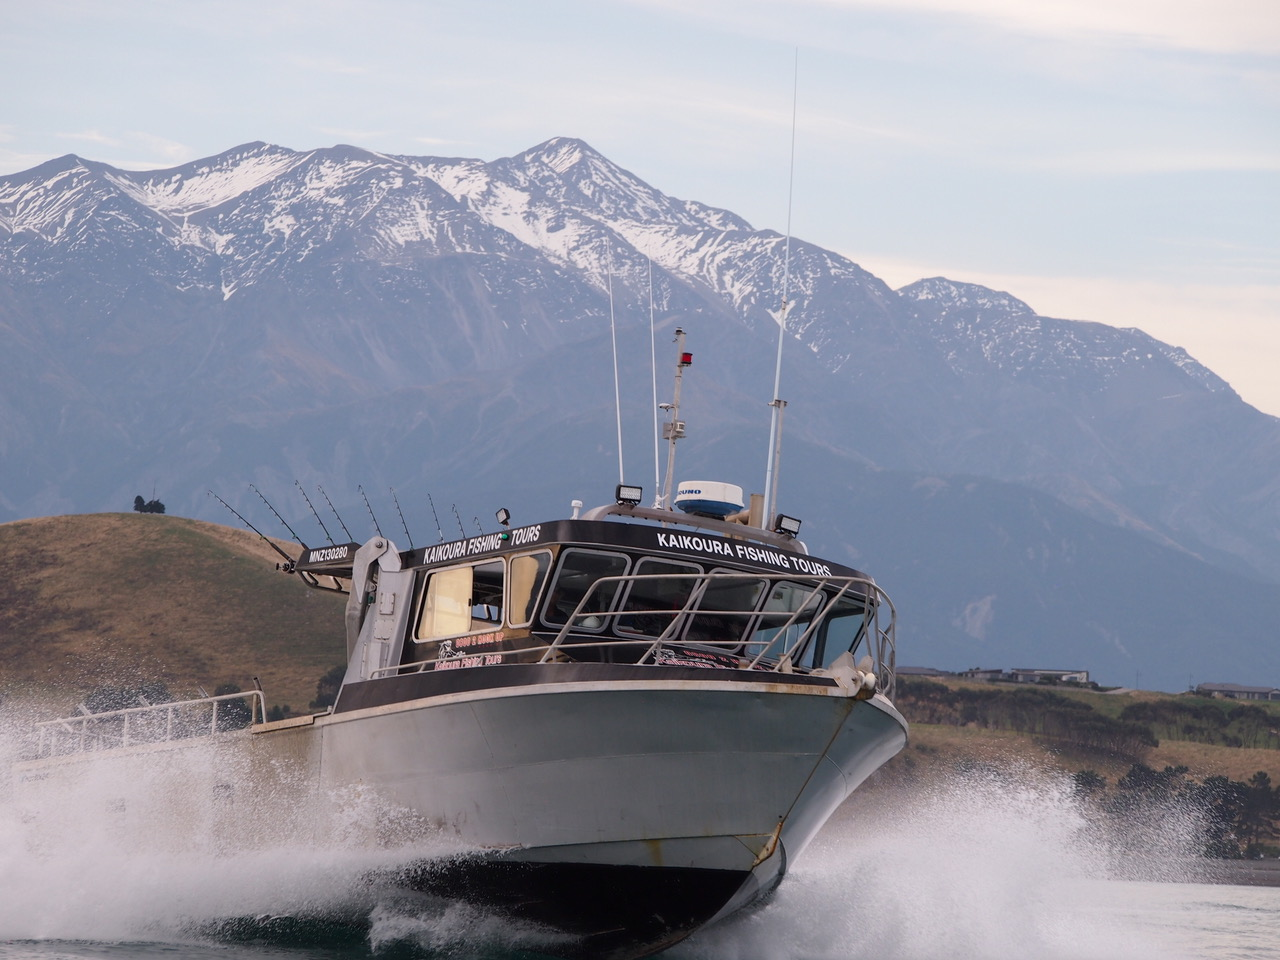 The Kaikoura Fishing Tours boat with Southern Alps in background